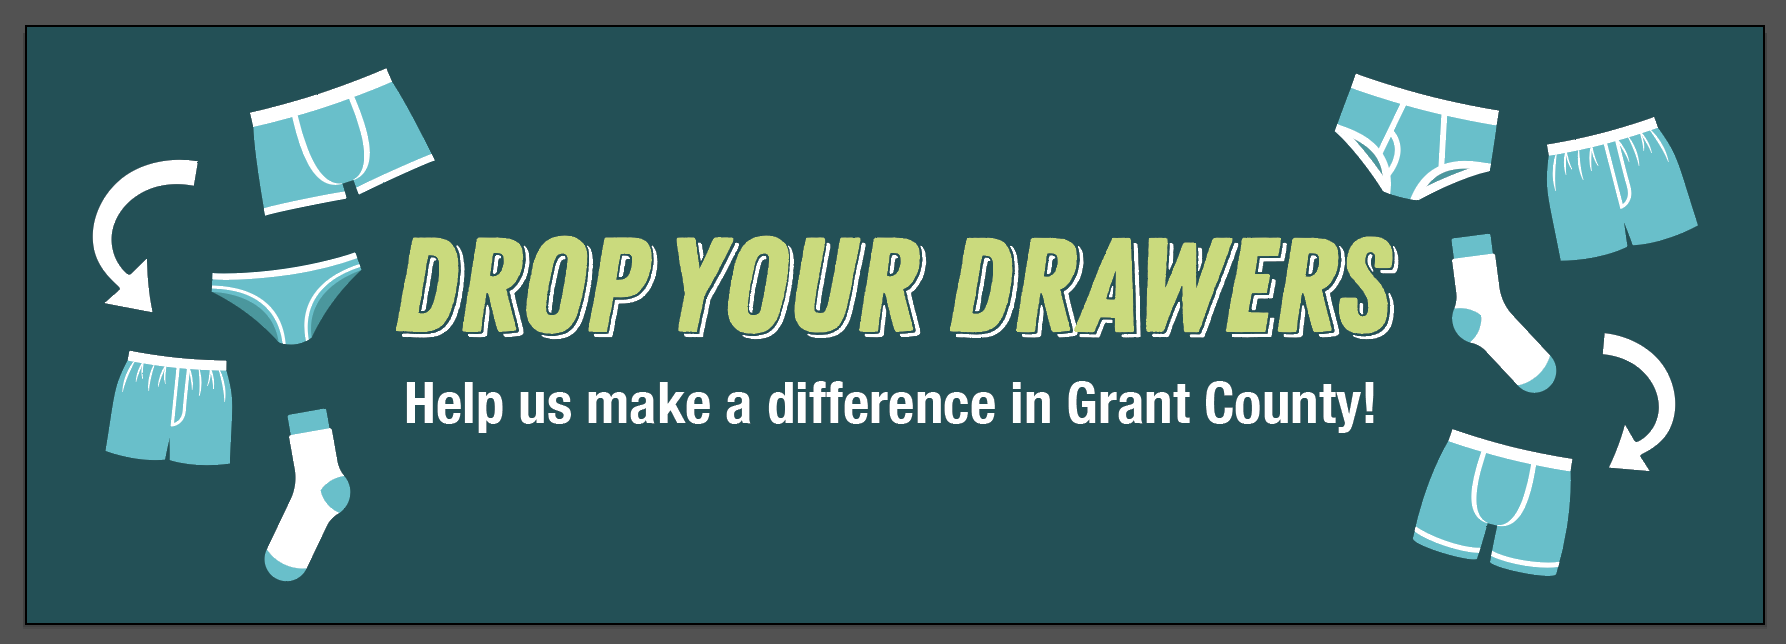 Drop Your Drawers - Help us make a difference in Grant County!